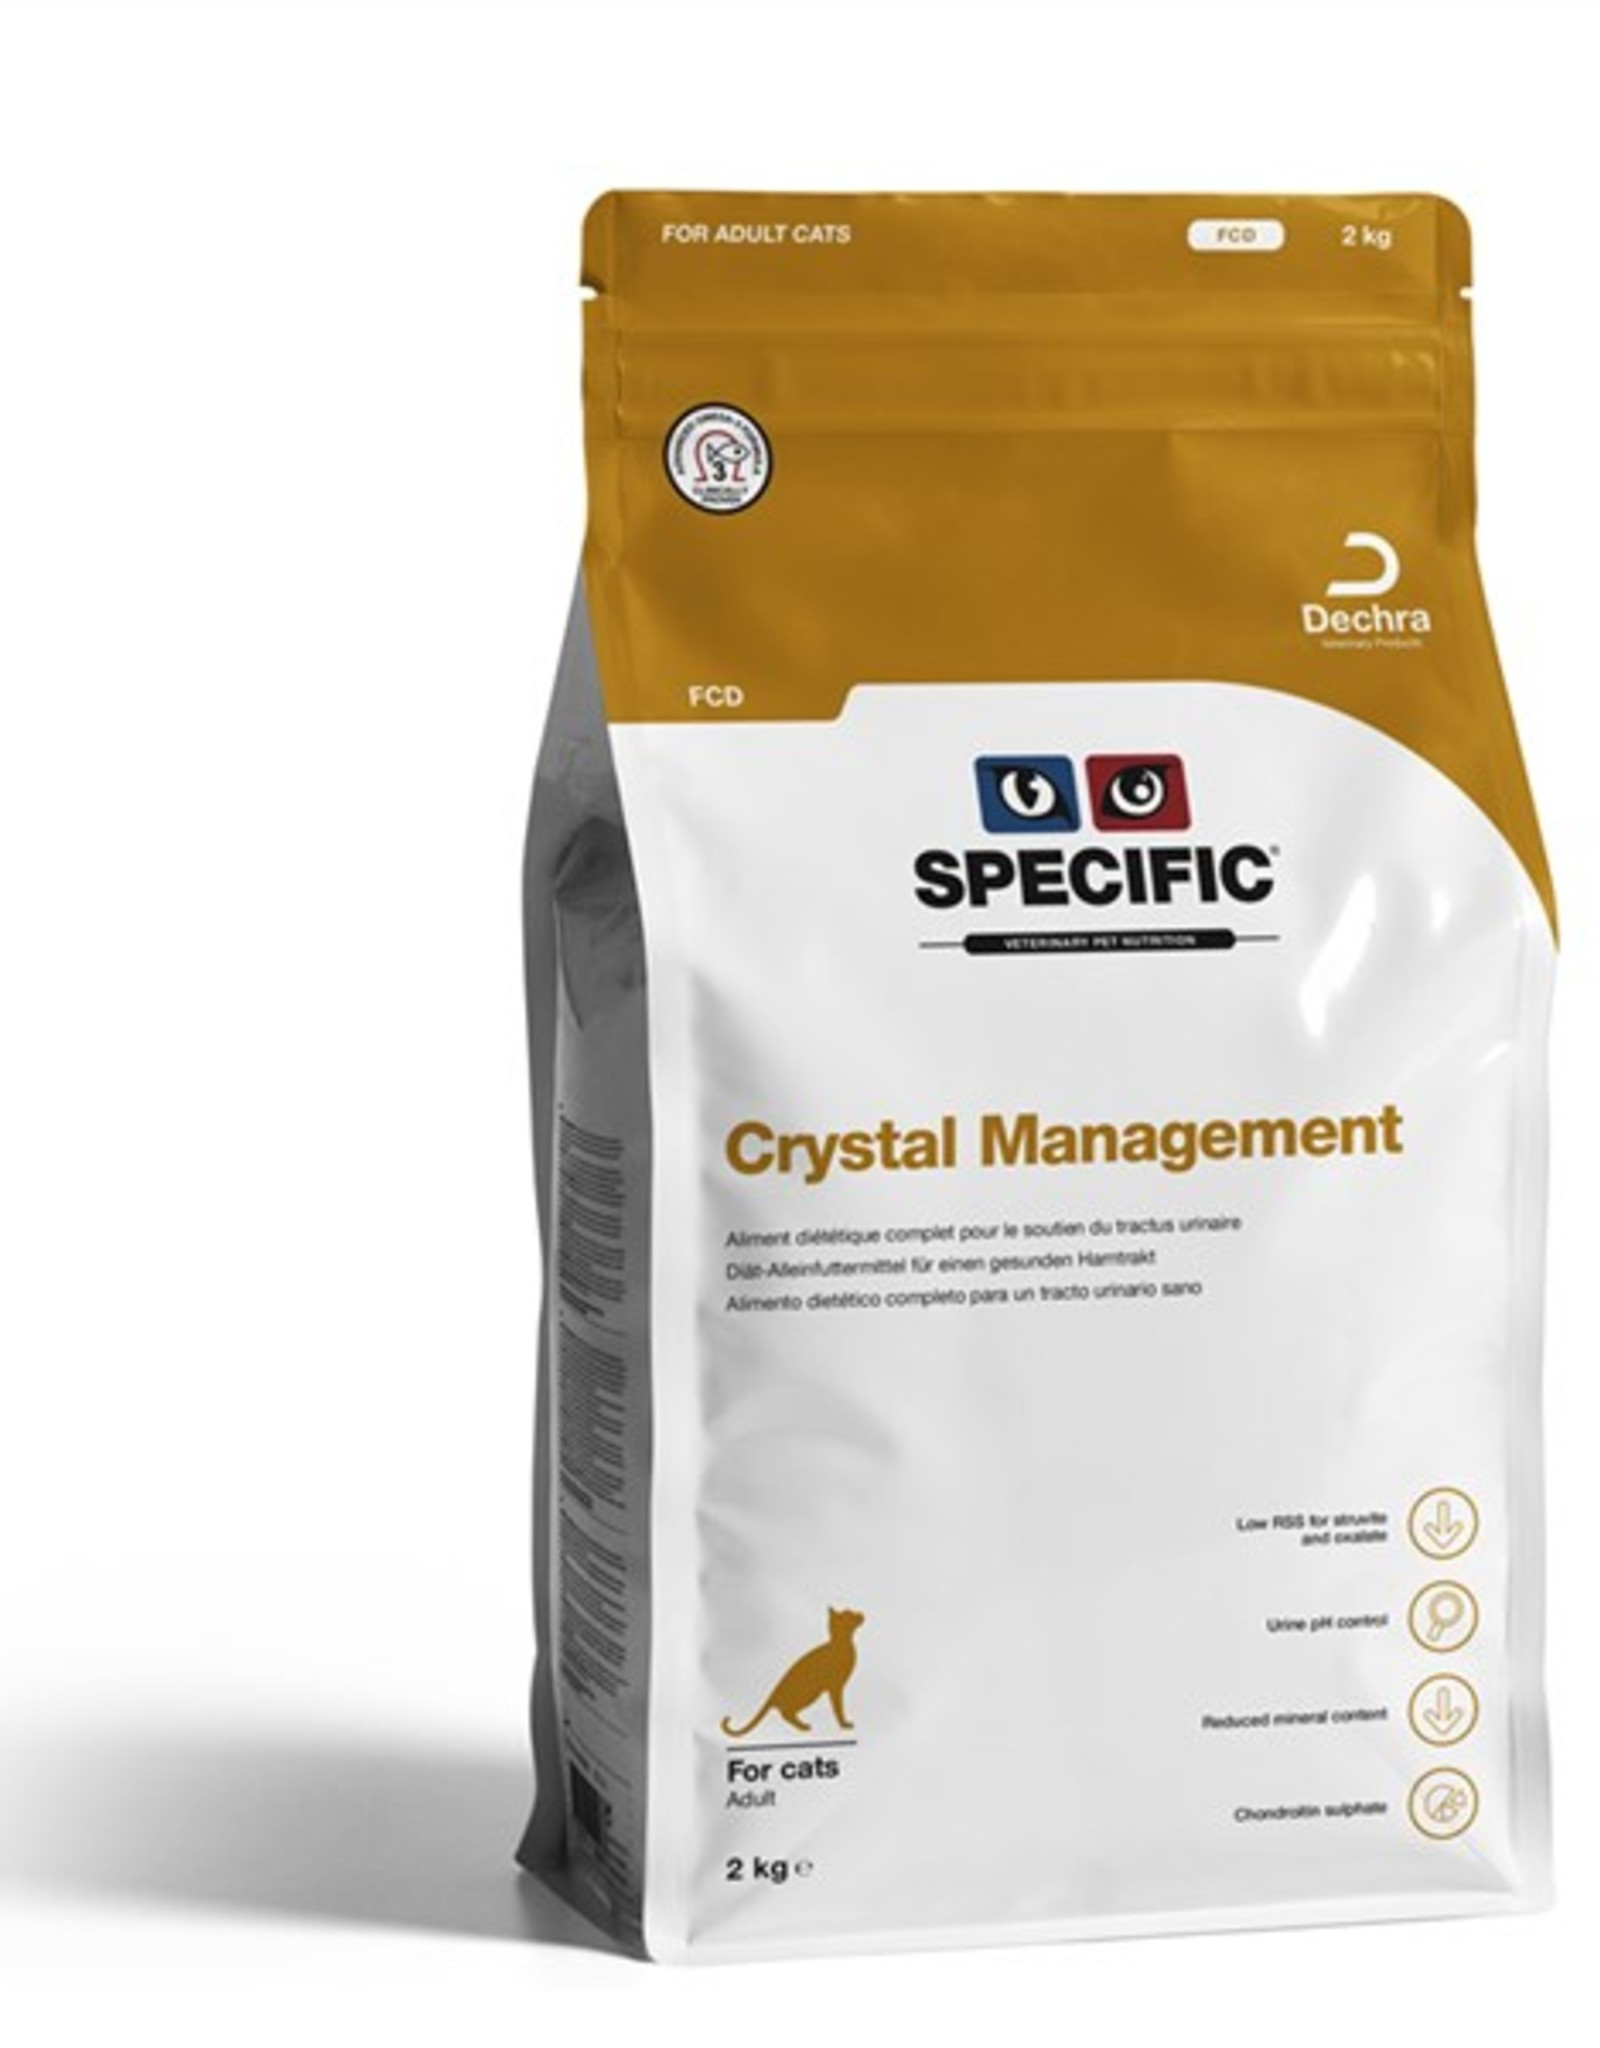 Specific Specific Fcd Crystal Management Chat 2kg